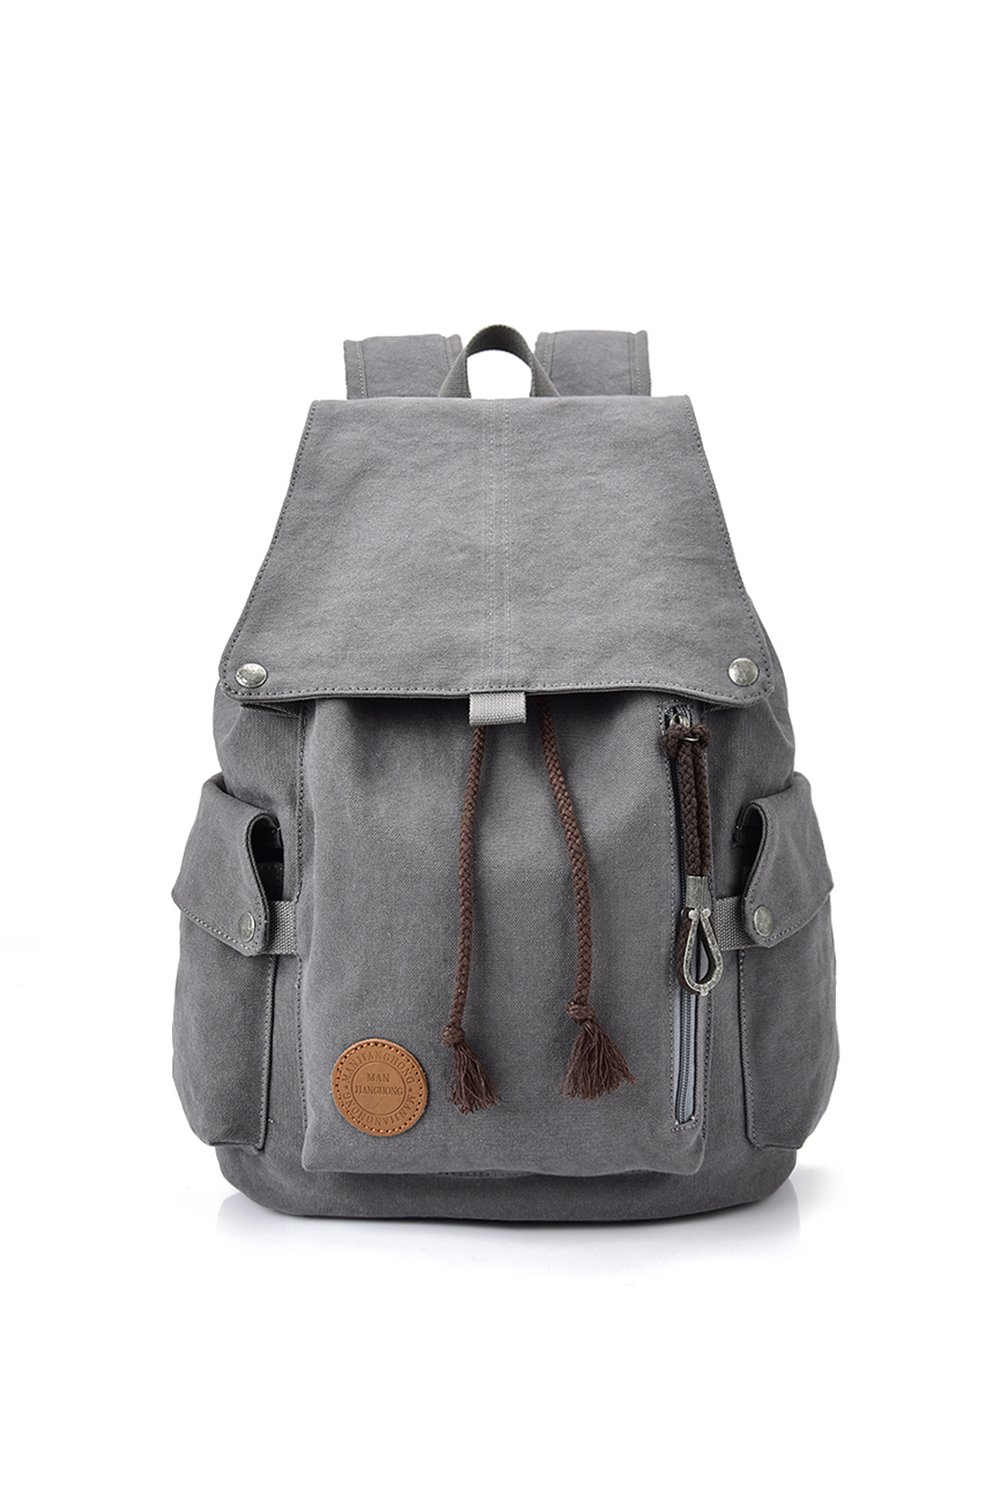 MIcoolker Canvas Shoulders Bag For Hiking Casual Weekend Pack Casual Backpack Schoolbag Grey